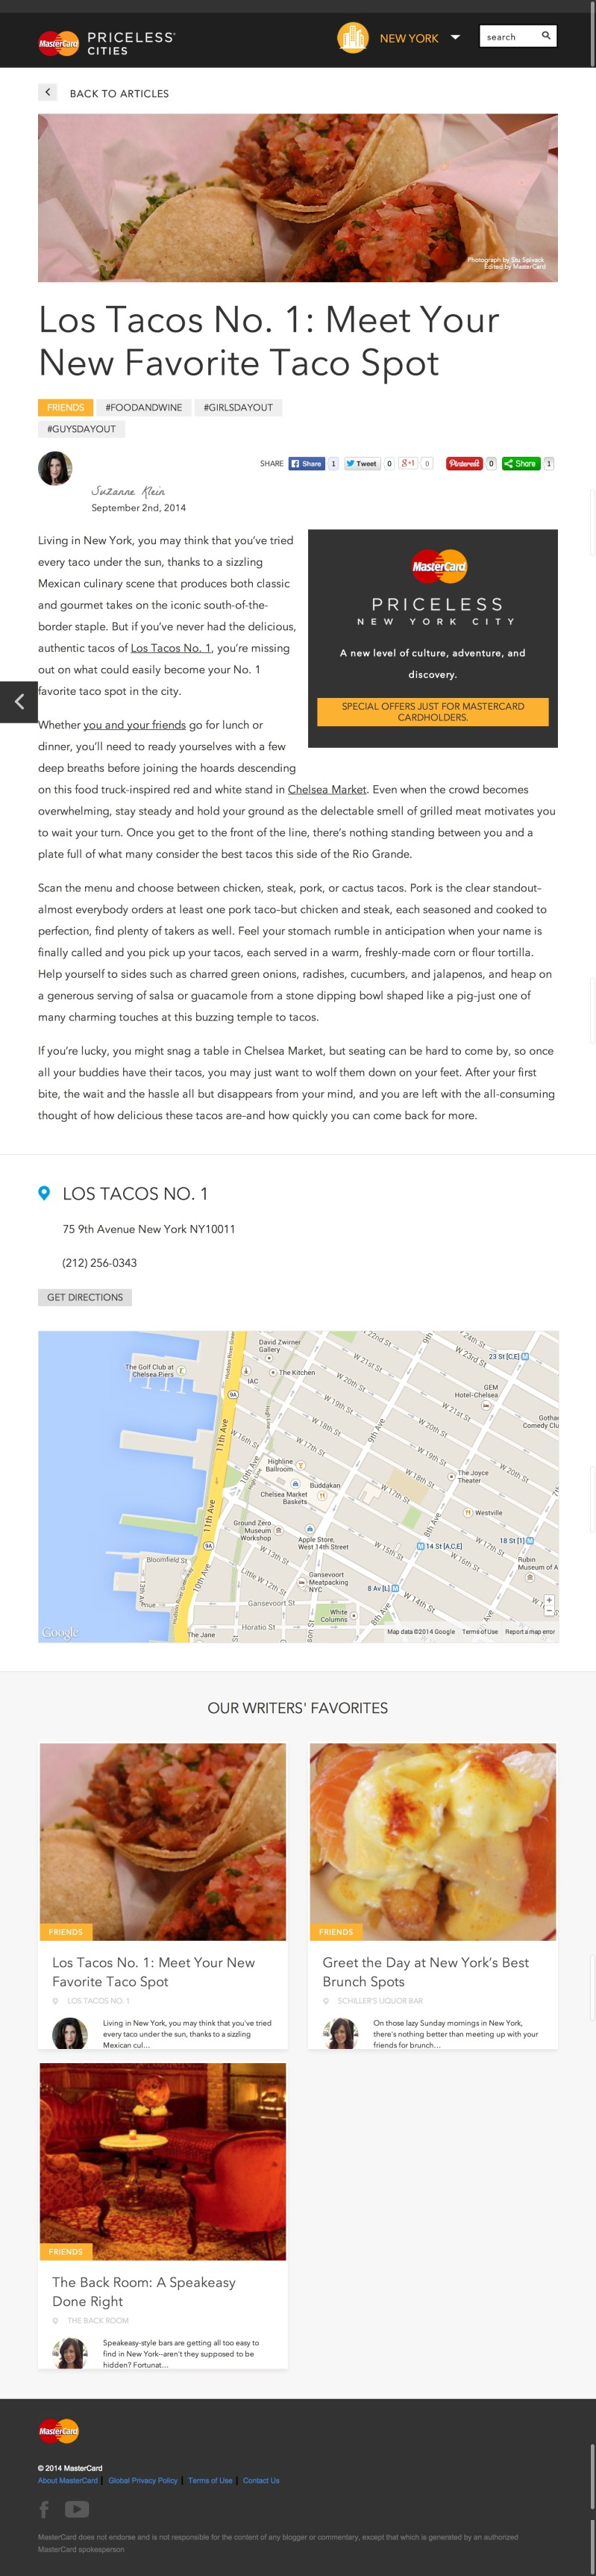 Los Tacos No. 1 Real Mexican Tacos at Chelsea Market